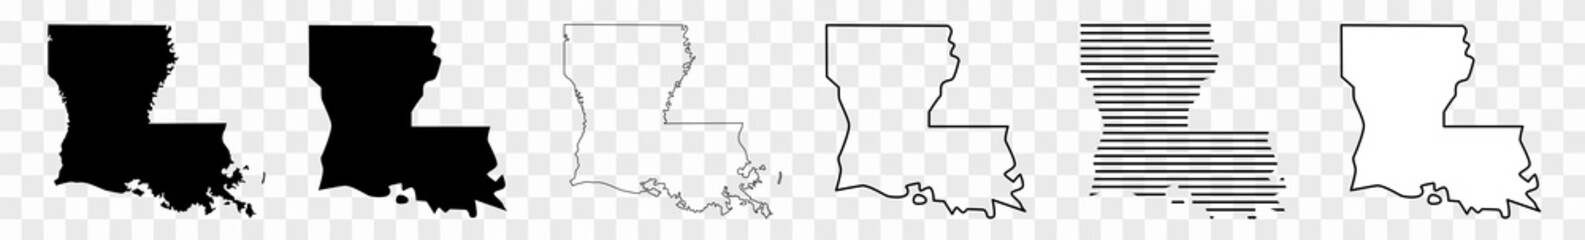 Louisiana Map Black | State Border | United States | US America | Transparent Isolated | Variations Fotomurales